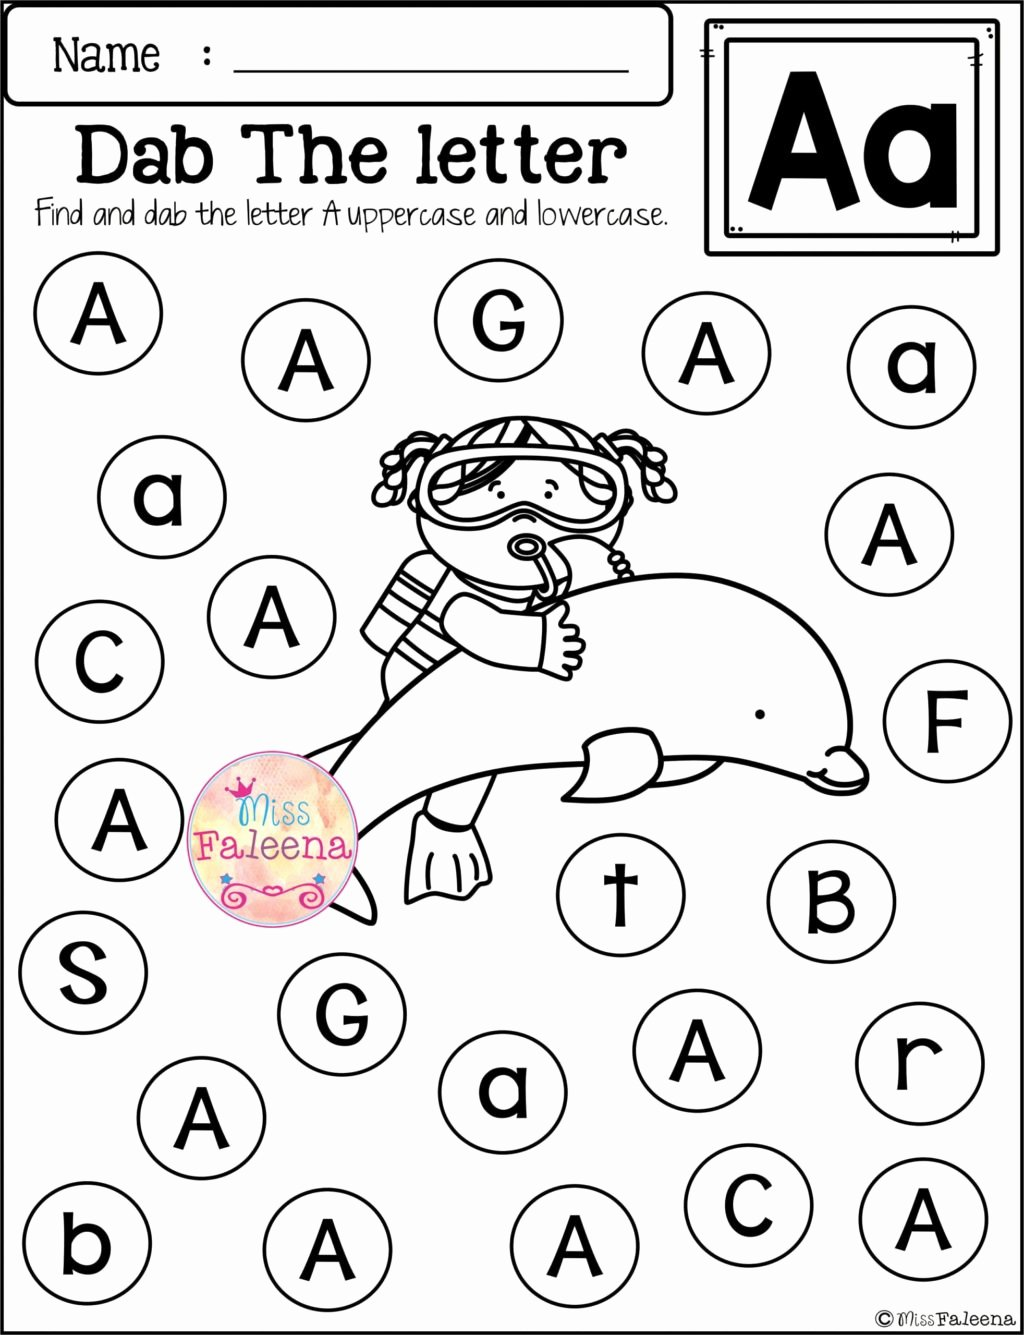 Preschool Alphabet Worksheets for Preschoolers Inspirational Worksheet Kindergarten Worksheets Free Preschool Alphabet